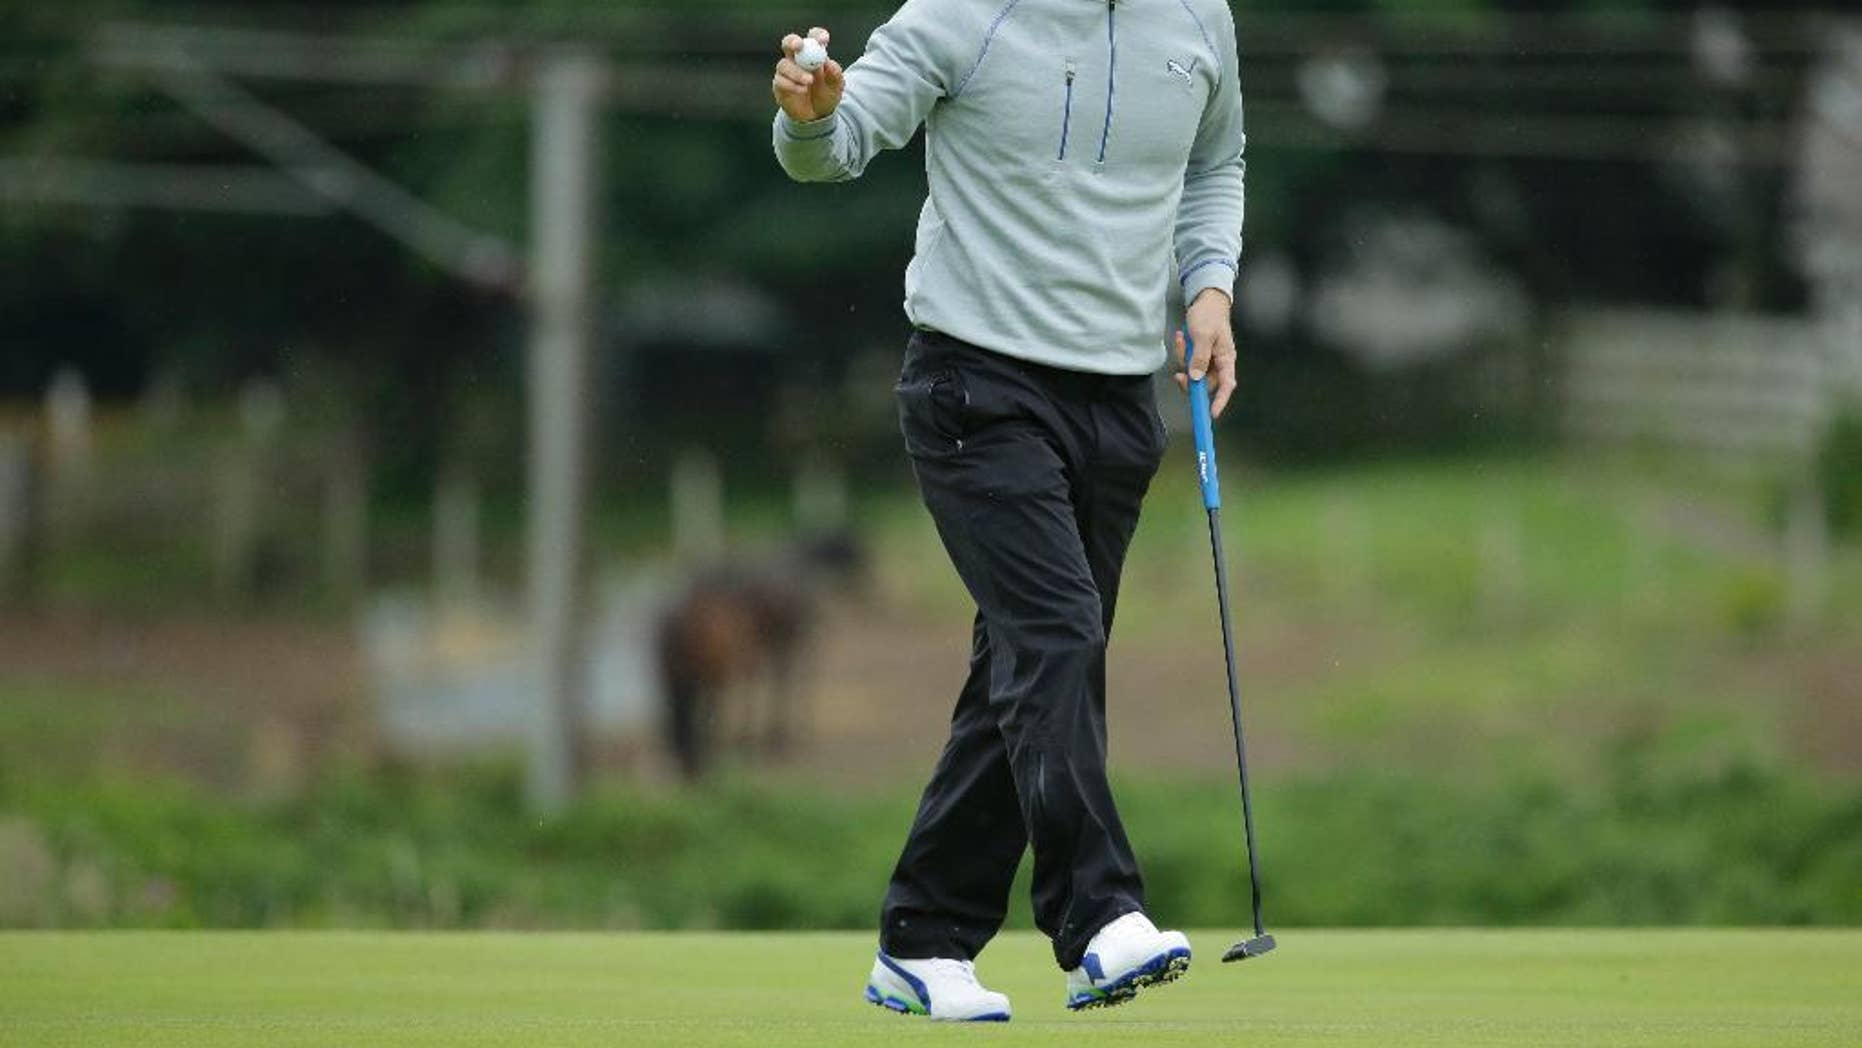 Soren Kjeldsen of Denmark acknowledges the spectators on the 10th green during the second round of the British Open Golf Championship at the Royal Troon Golf Club in Troon, Scotland, Friday, July 15, 2016. (AP Photo/Matt Dunham)